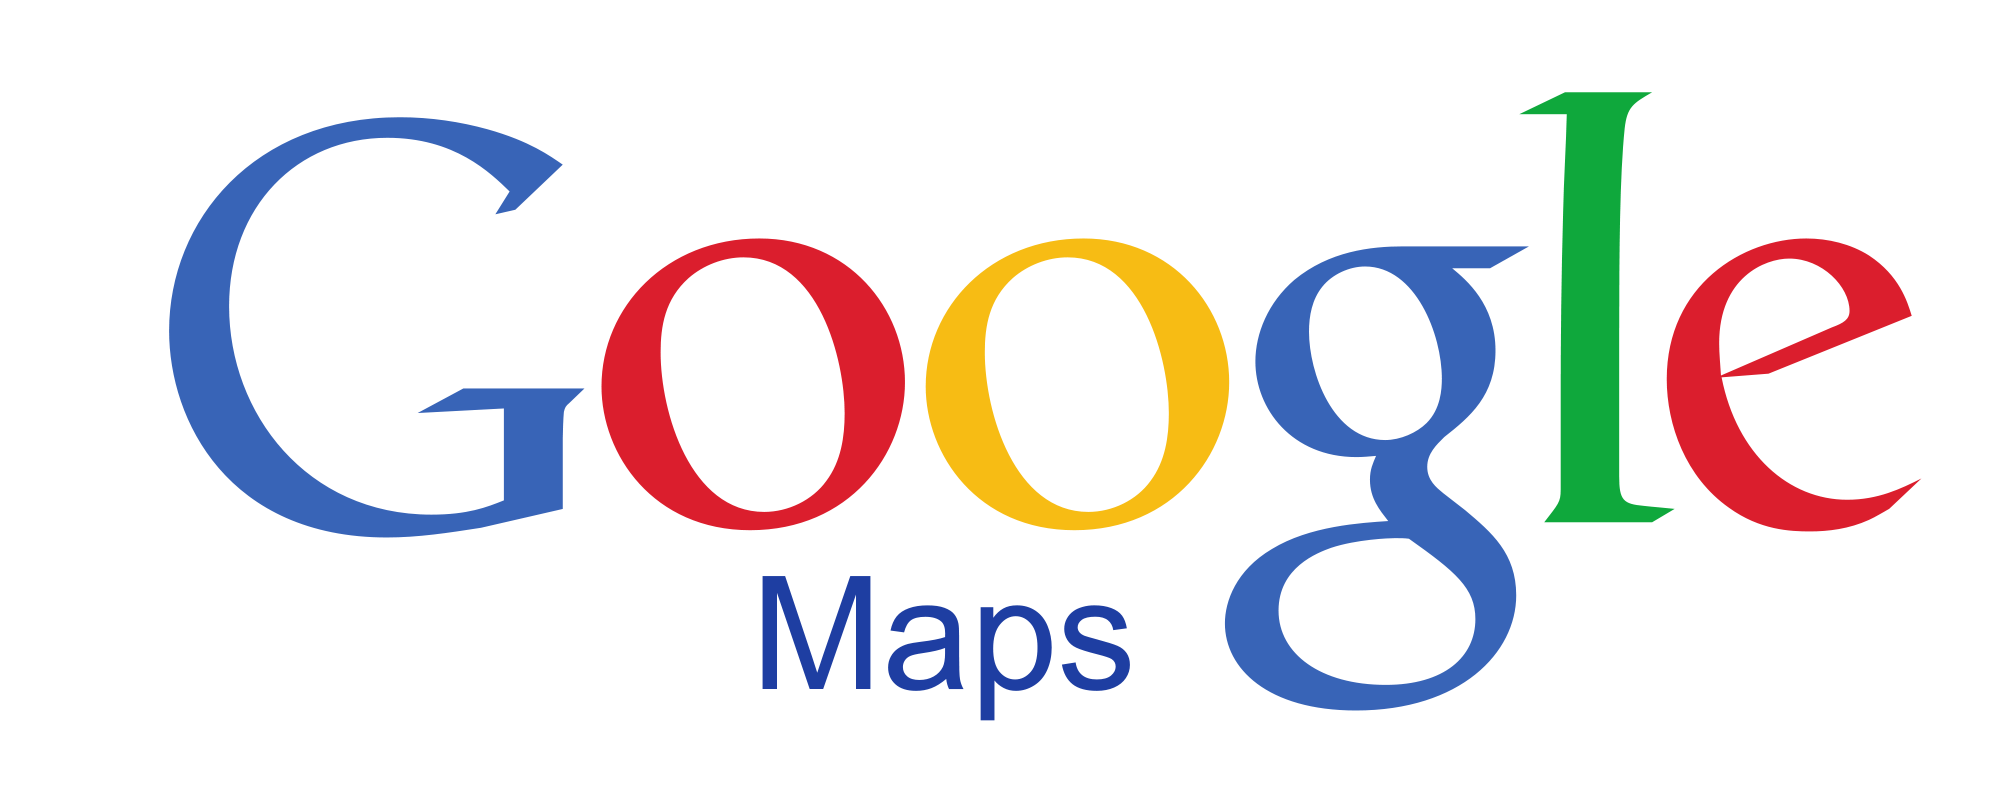 12 more Indian cities will now be served by Google Maps